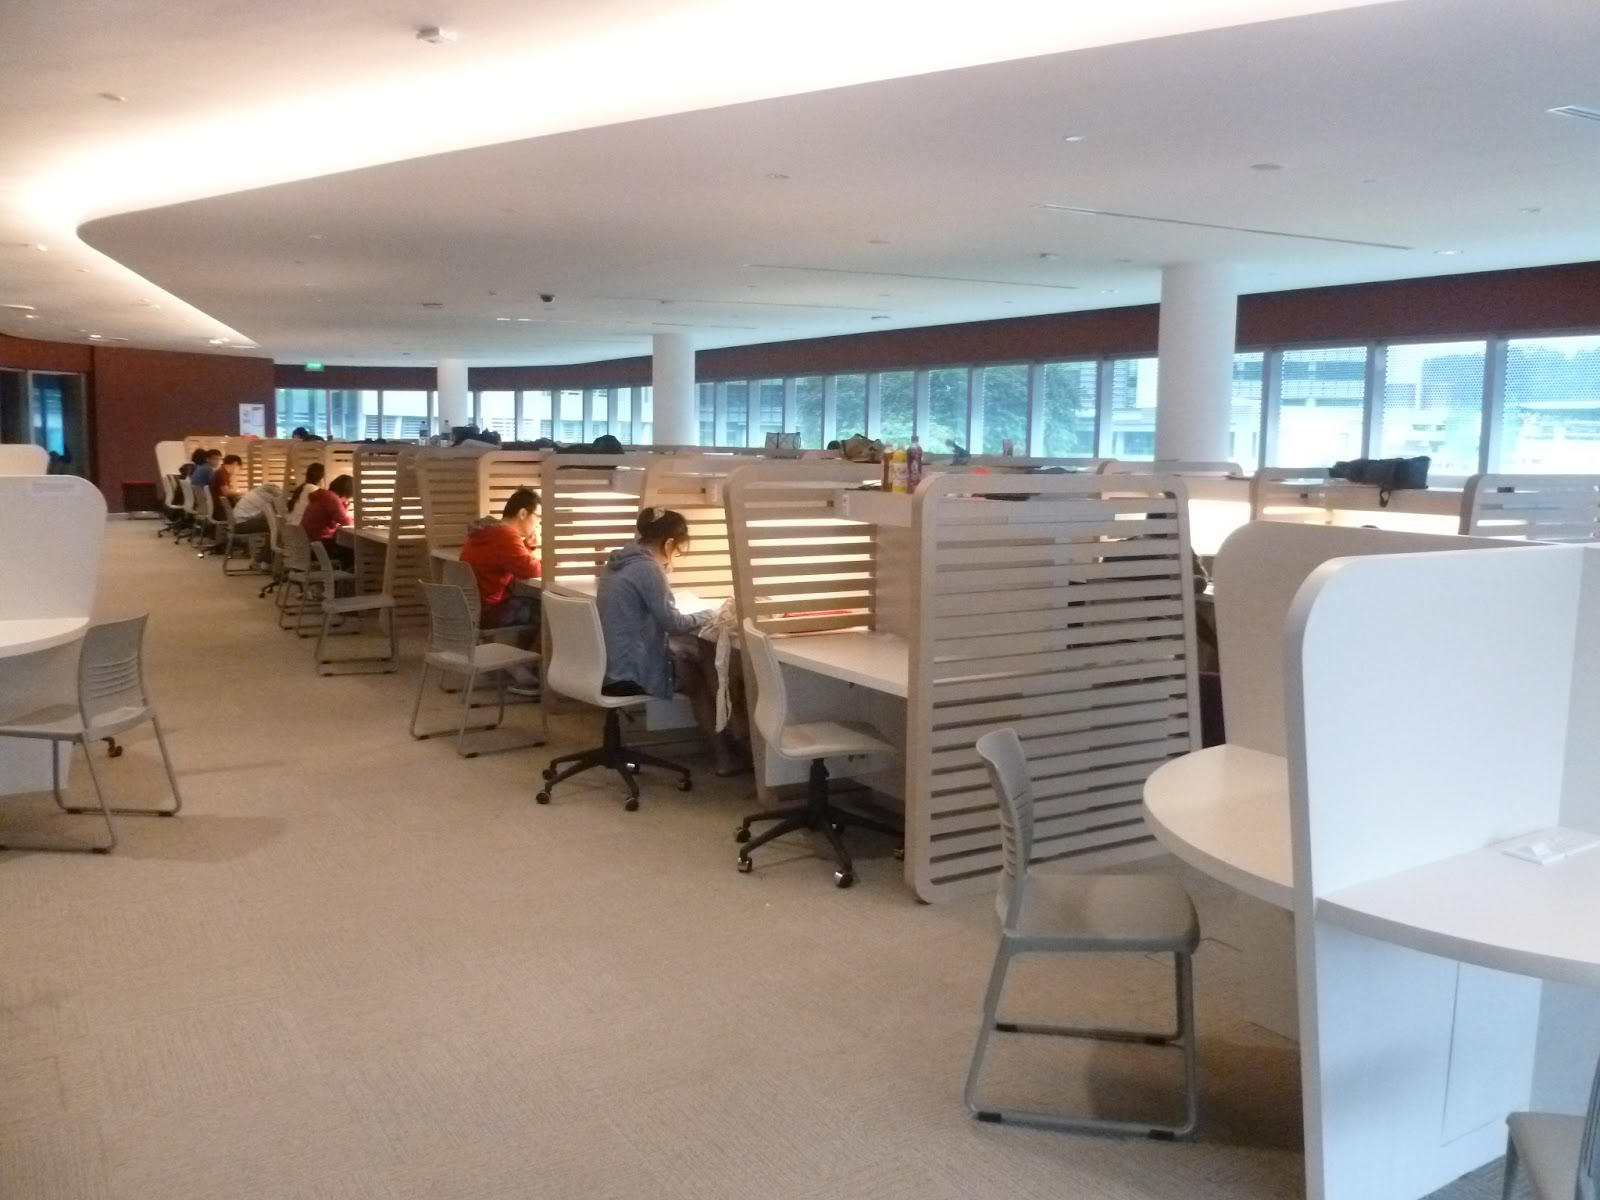 Study Carrels - globalfurnituregroup.com